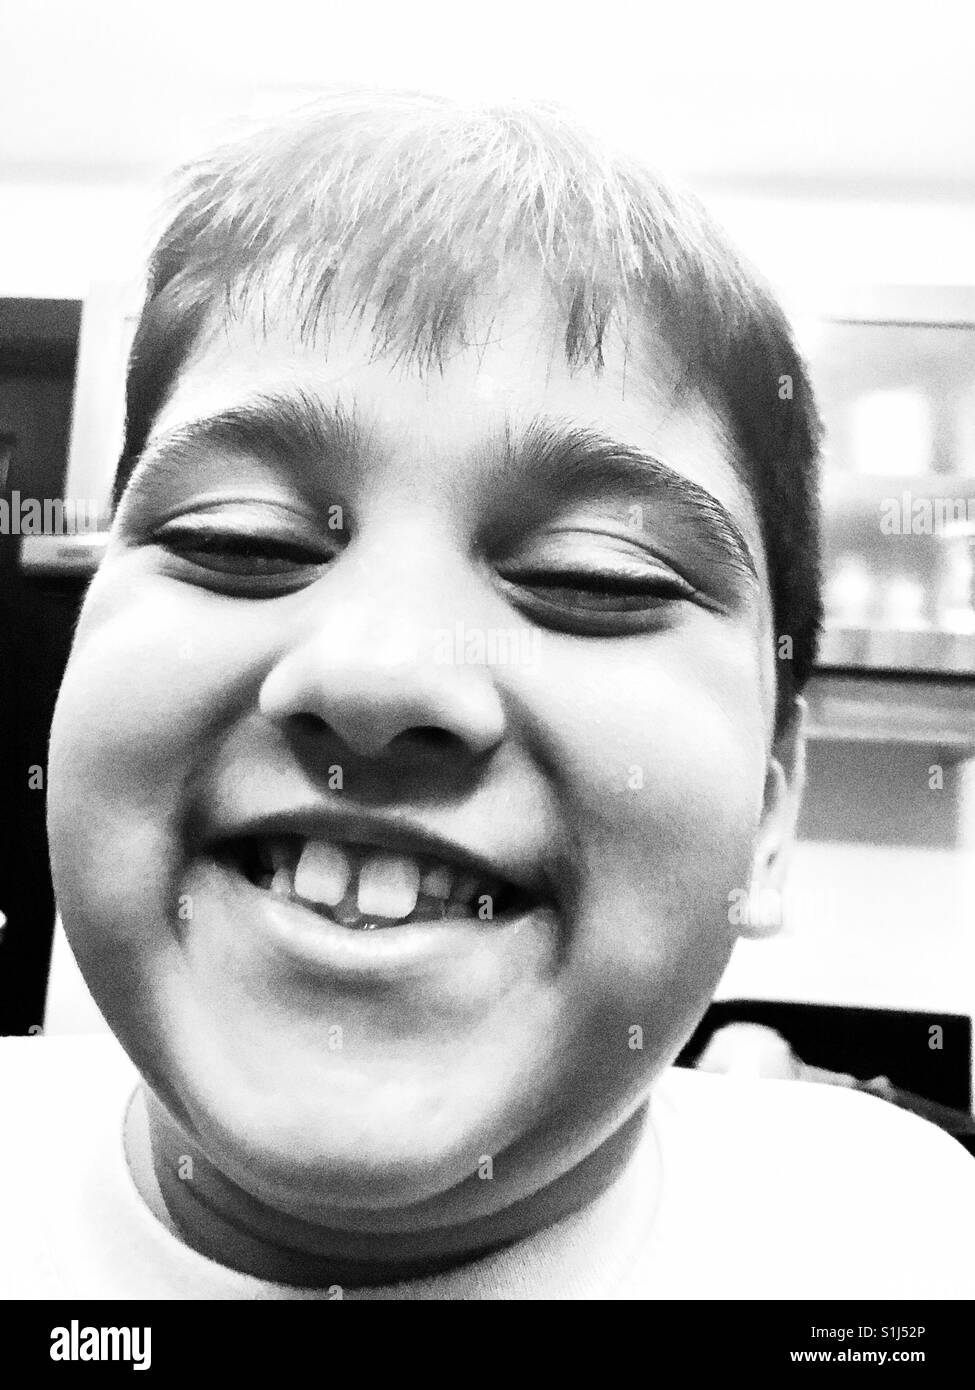 A 7 year old boy is happy to see his permanent central incisors( front teeth) grown back again😀 - Stock Image